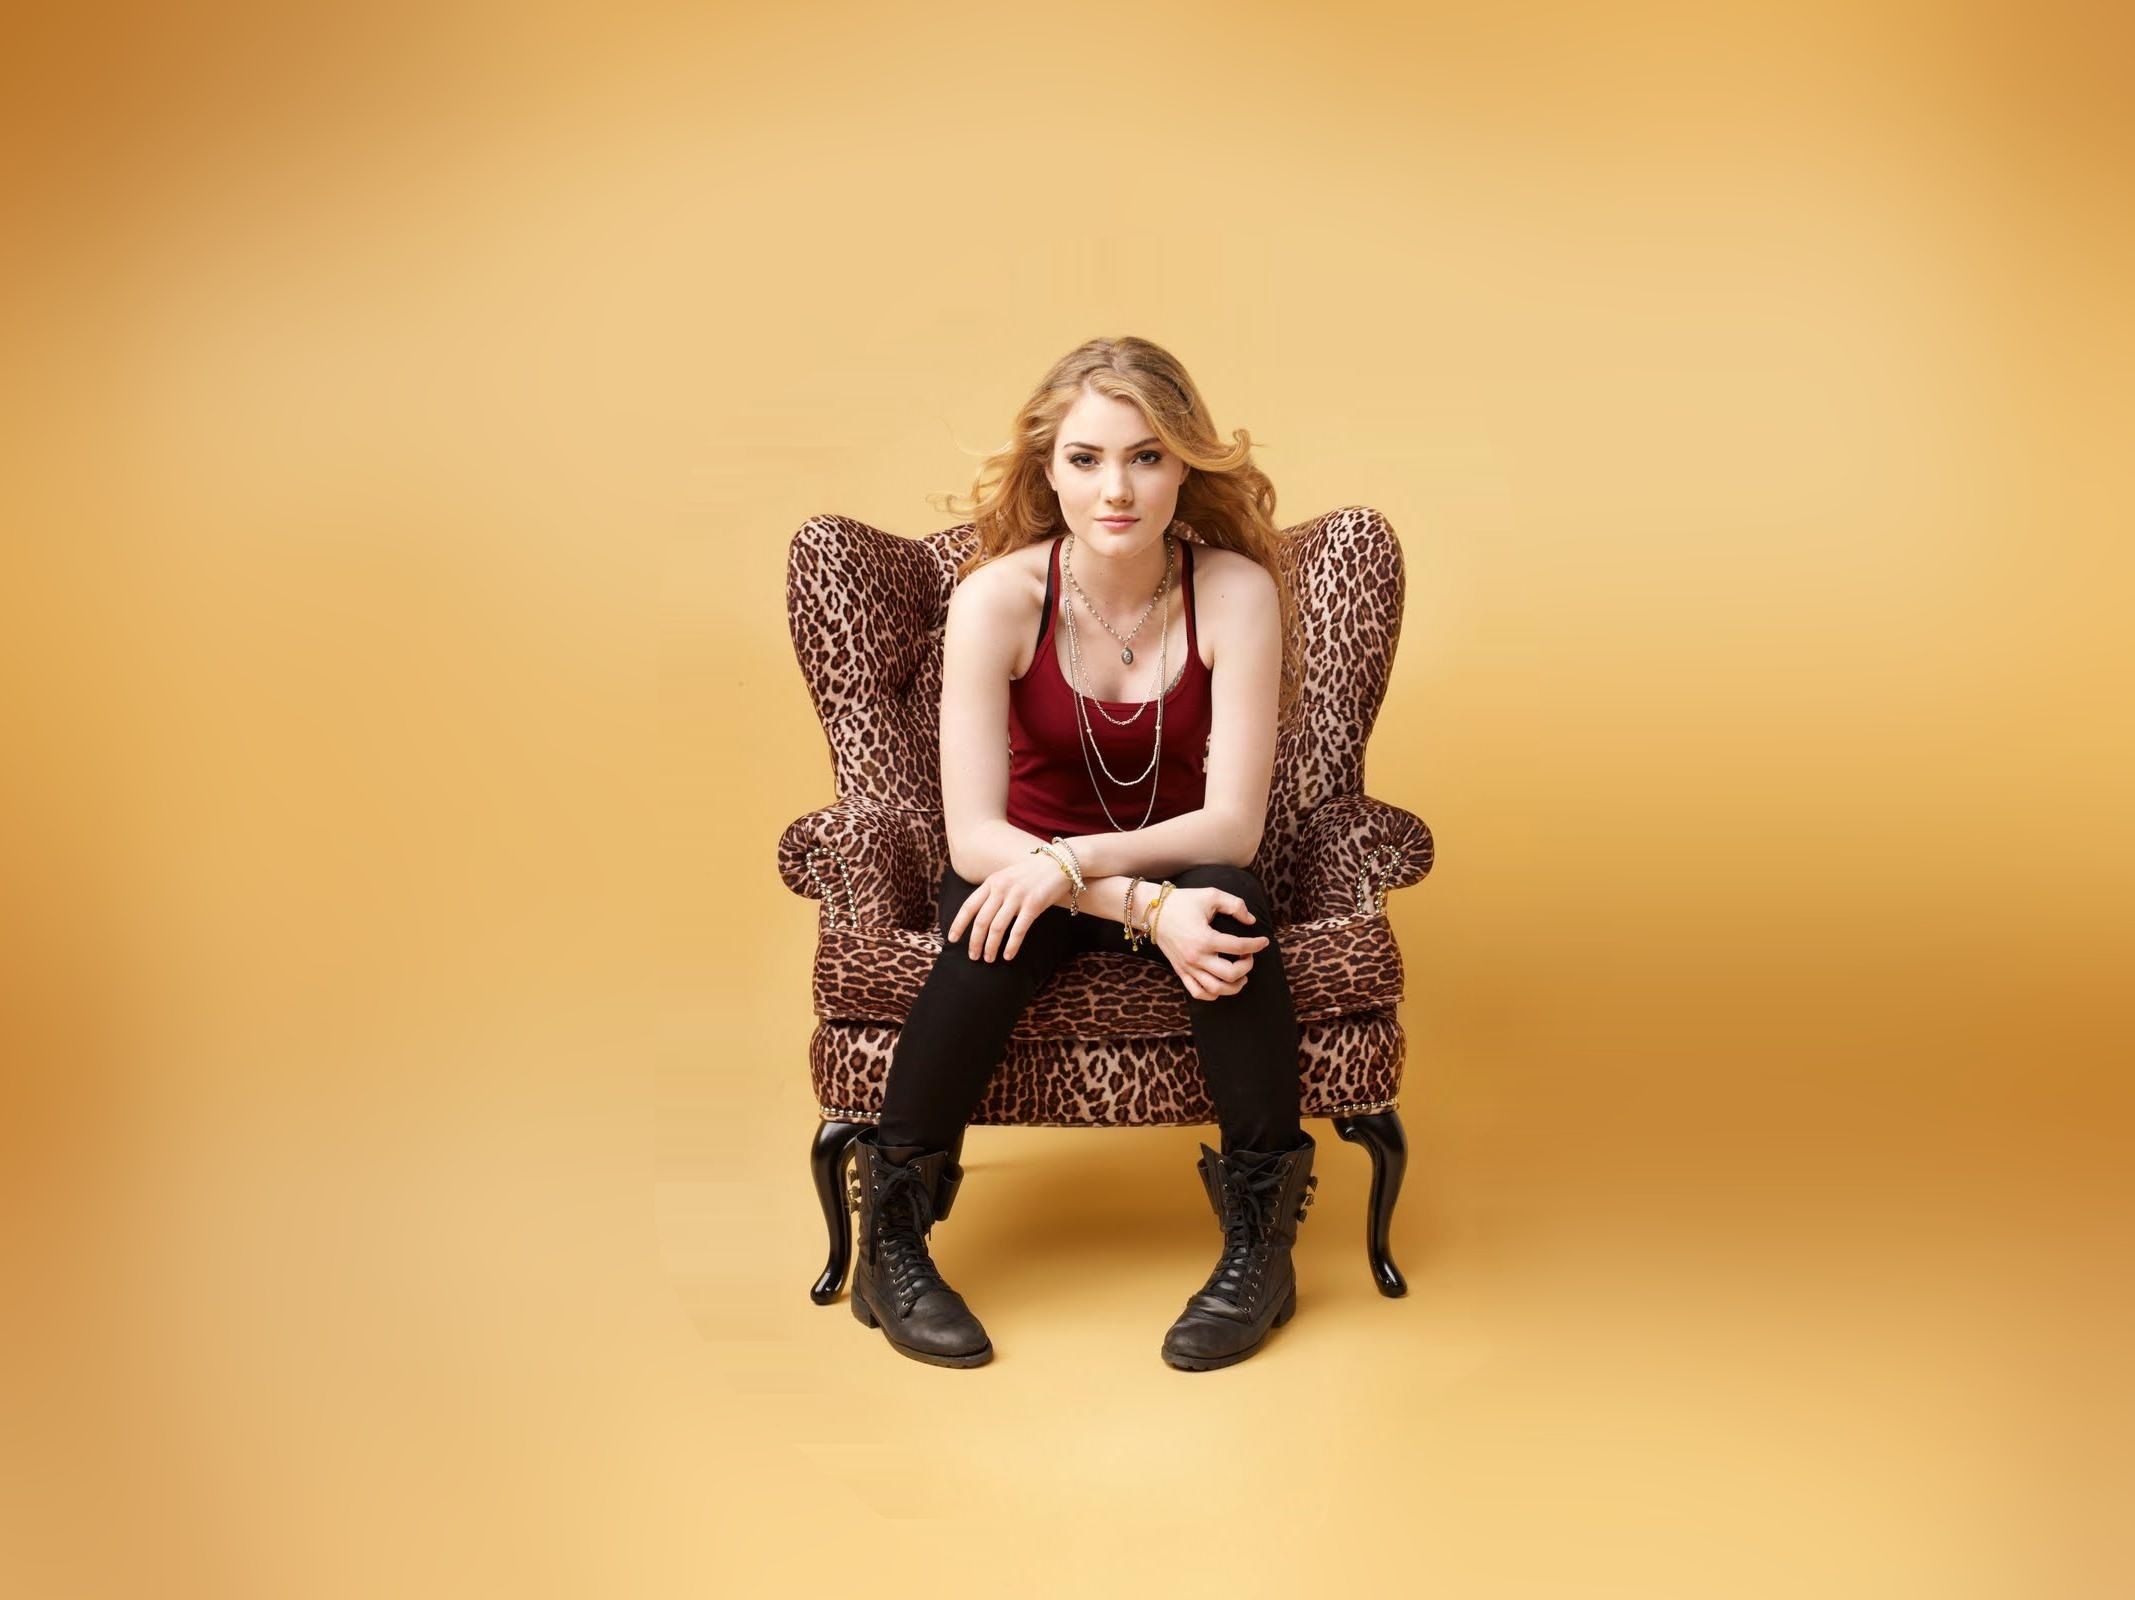 skyler samuels wallpaper 55434